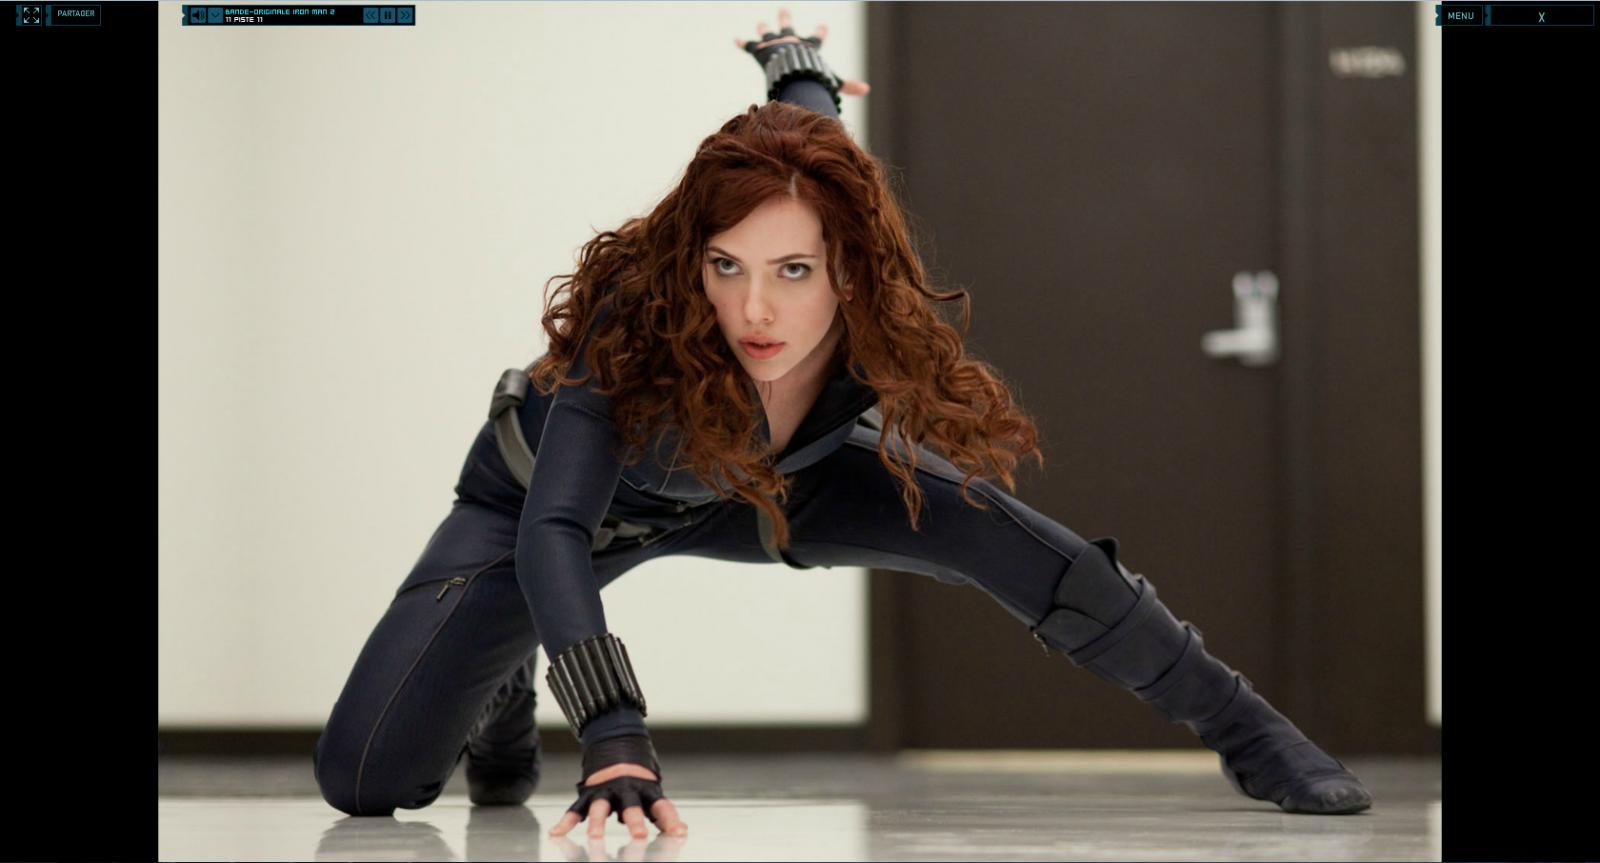 Wallpaper Iron Man 2 Natasha Romanoff Iron Man